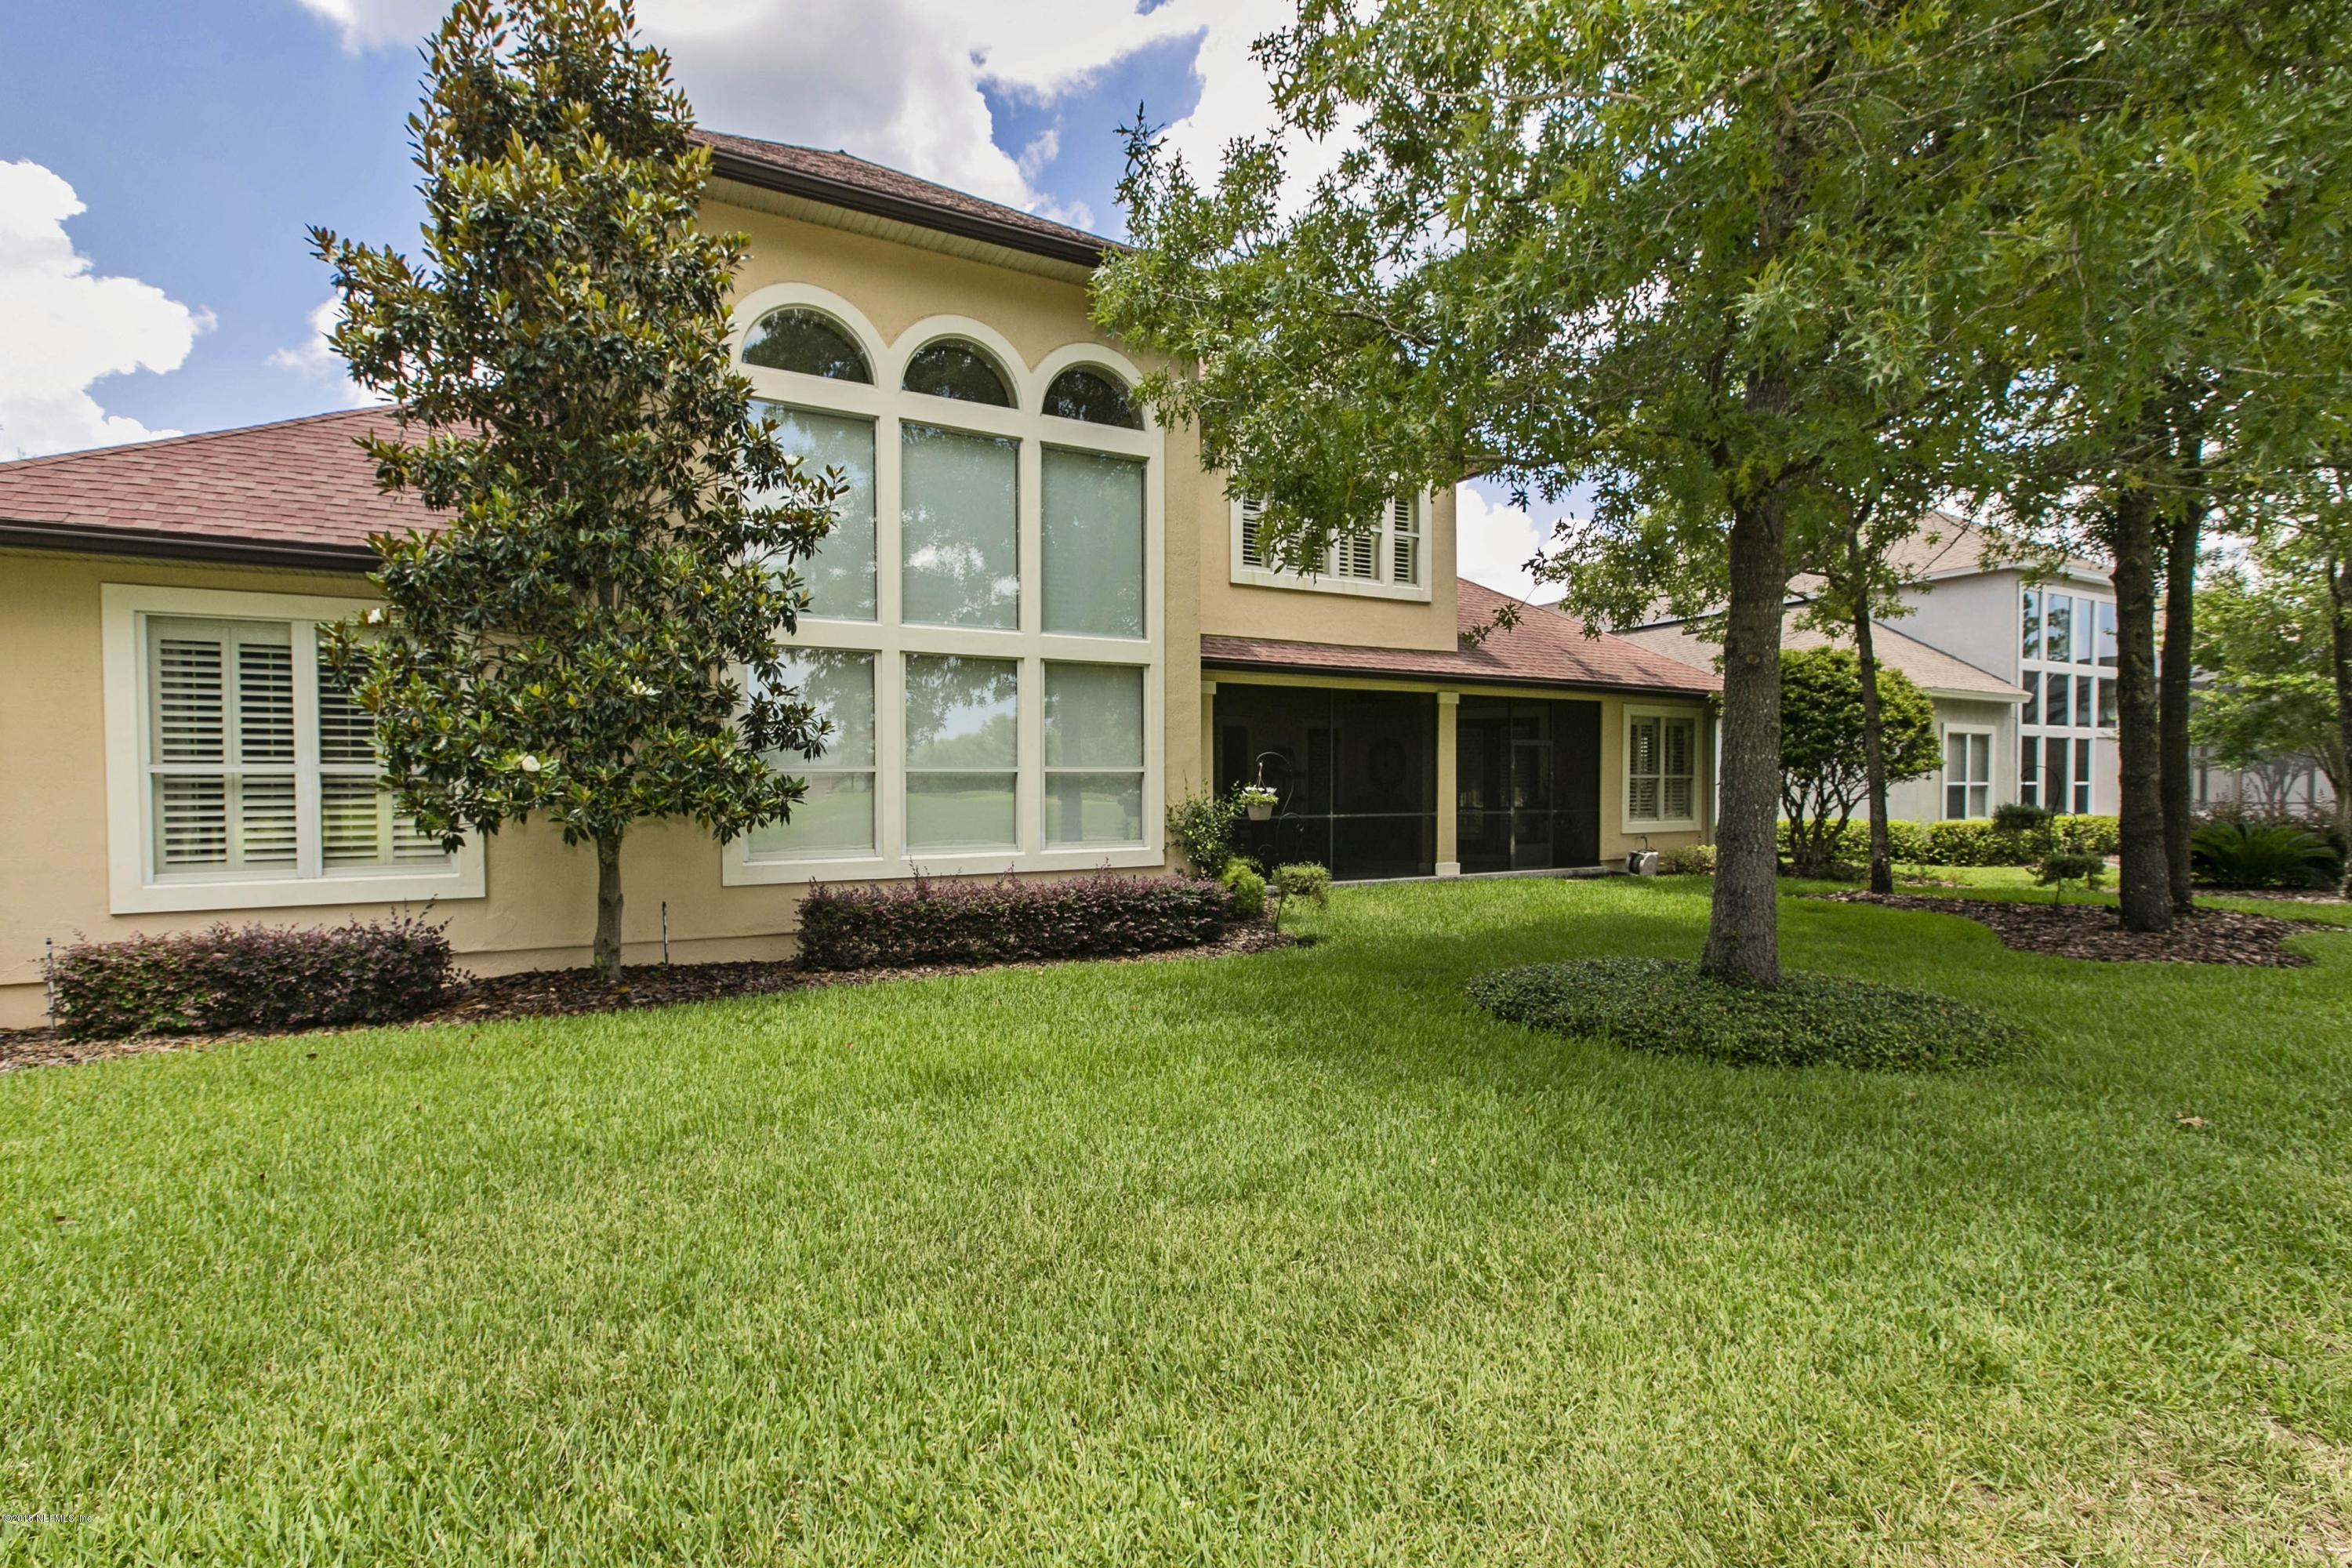 2133 QUAY, ST AUGUSTINE, FLORIDA 32092, 4 Bedrooms Bedrooms, ,4 BathroomsBathrooms,Residential - single family,For sale,QUAY,952740